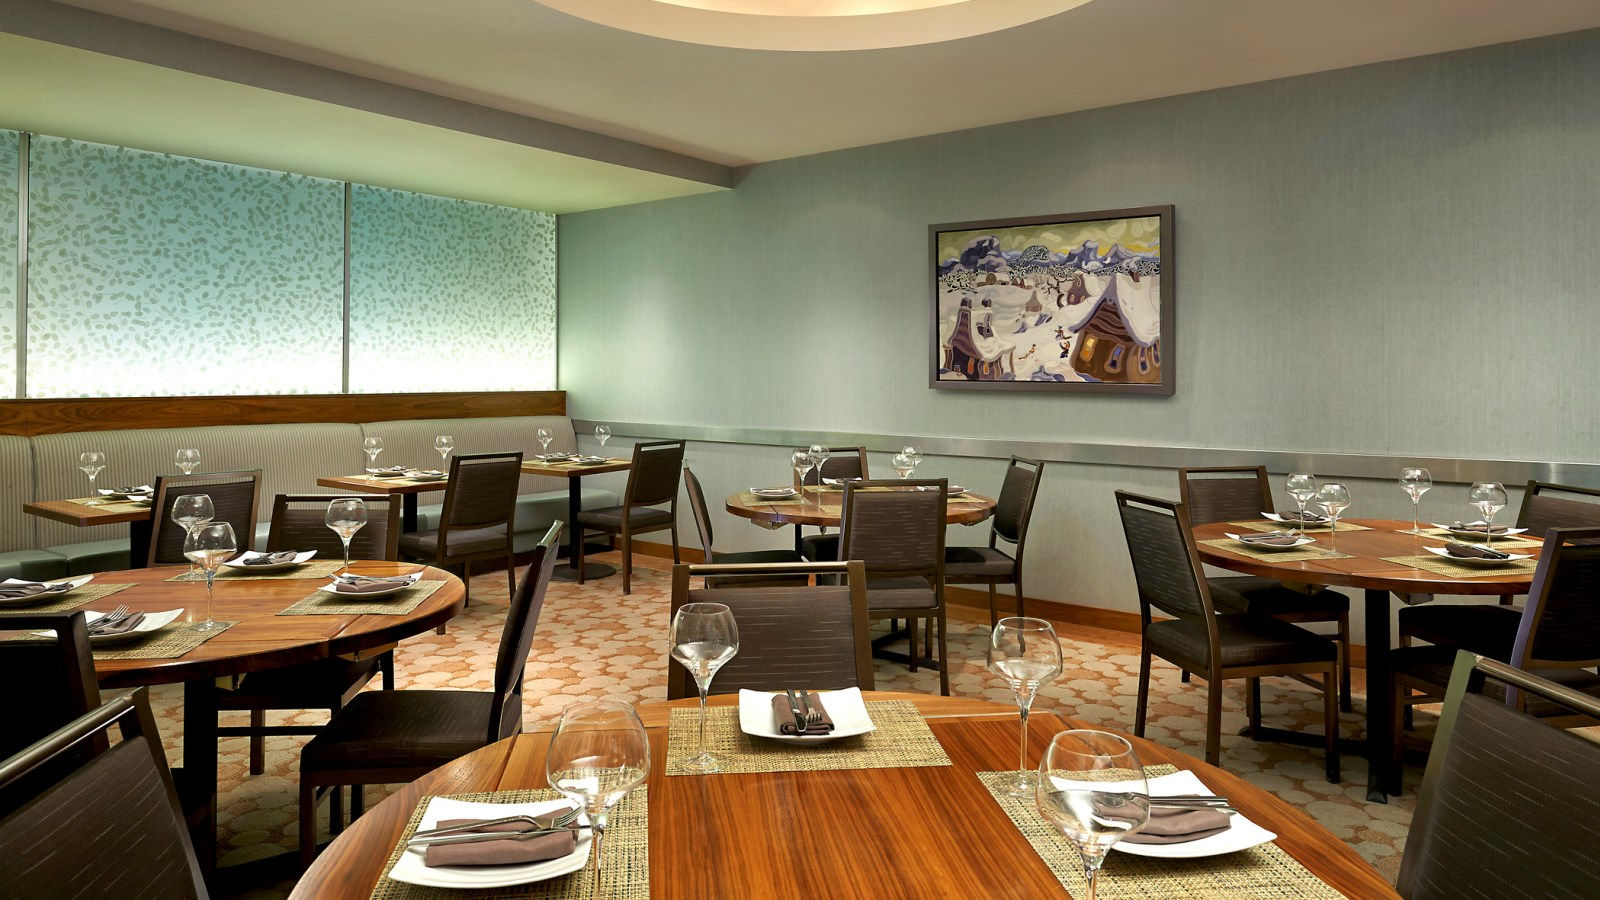 Calgary Hotel Accommodation - Dining